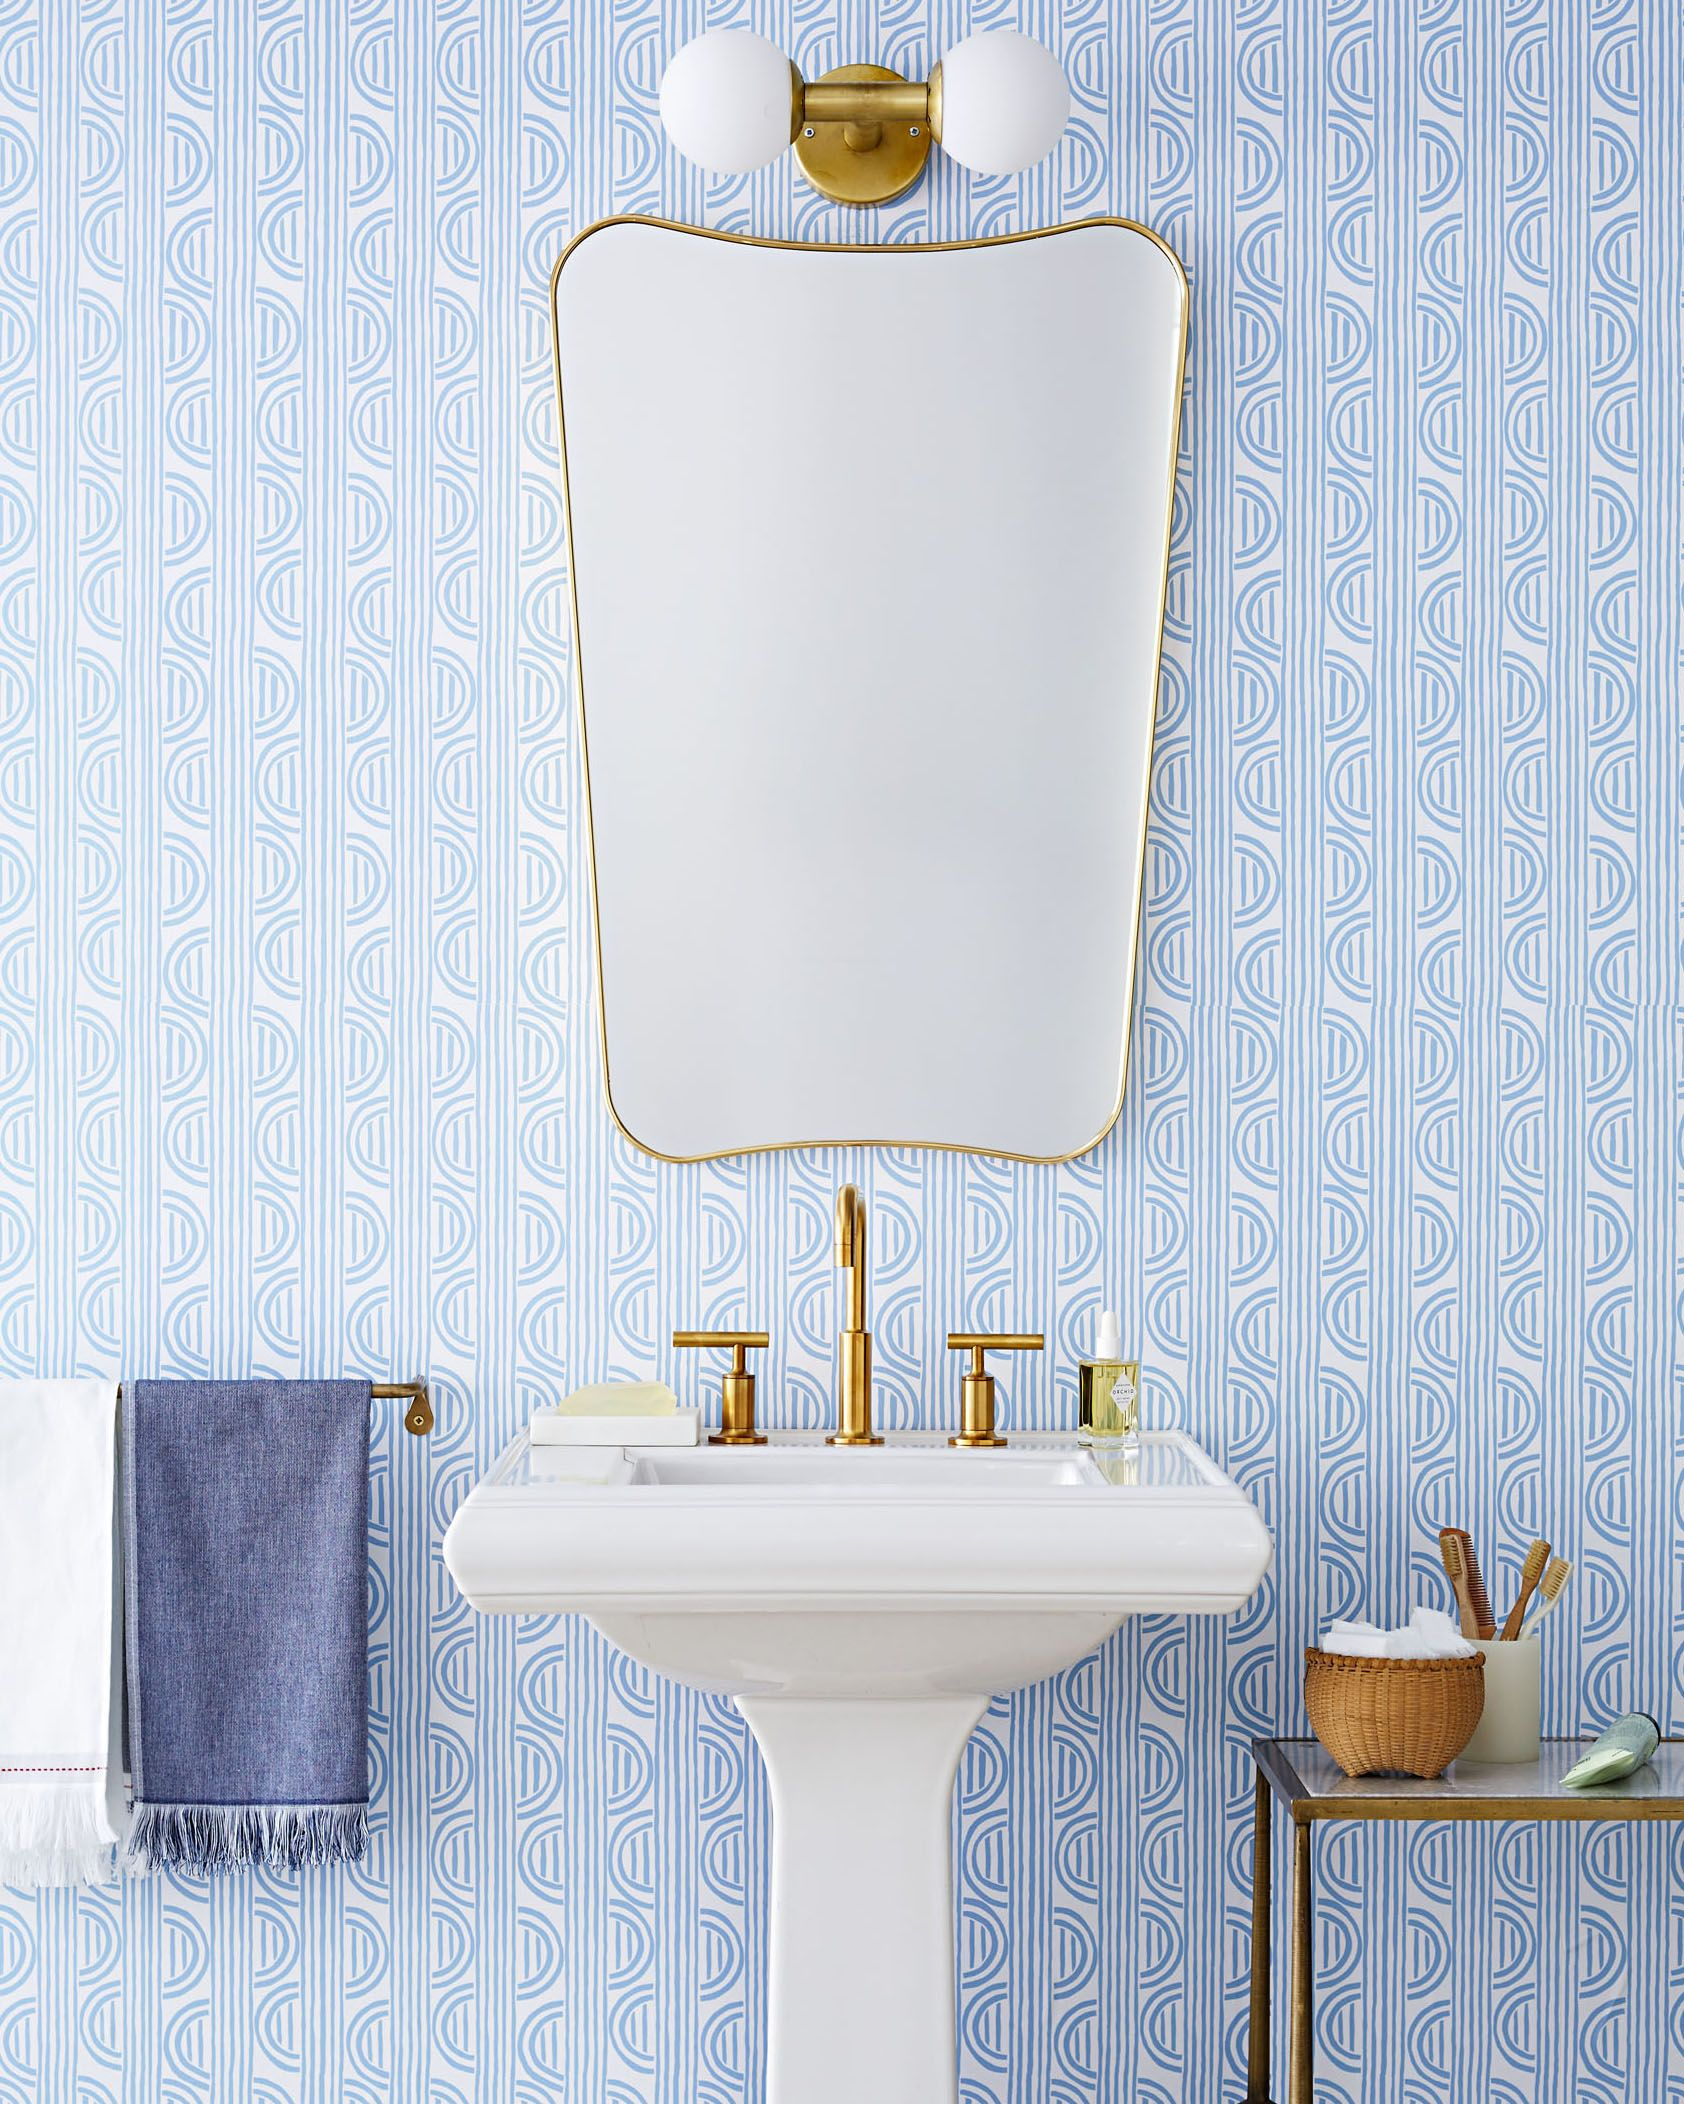 The Best Removable Wallpaper Patterns Easy To Remove Wallpaper Best Removable Wallpaper Removable Wallpaper